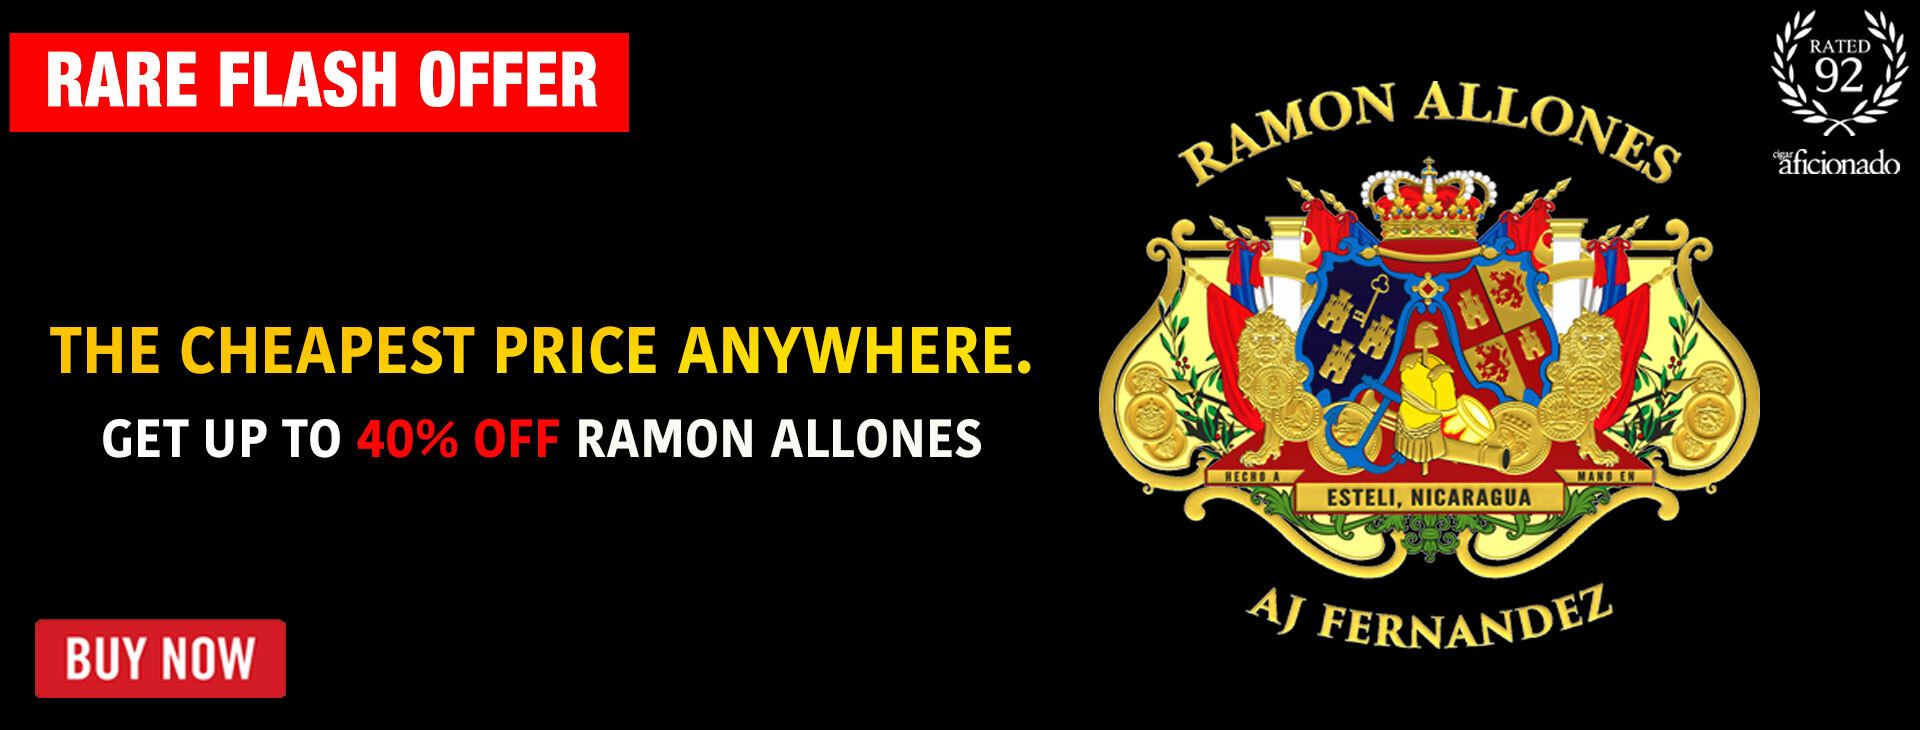 40% OFF 93-RATED RAMON ALLONES BY AJ FERNANDEZ!